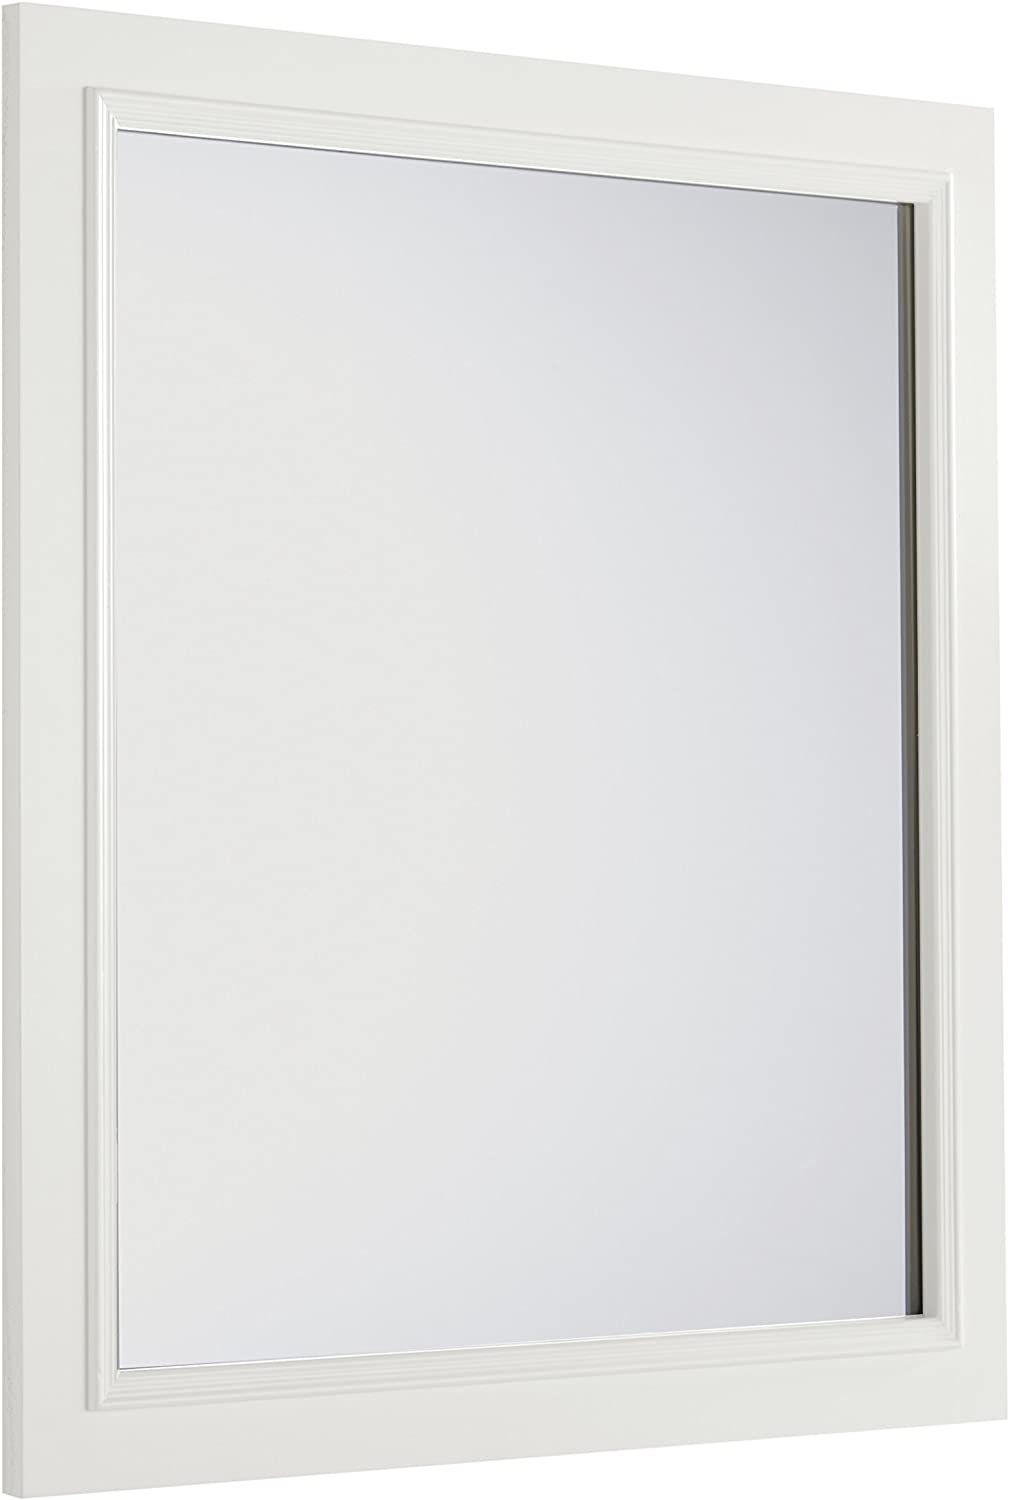 SIMPLIHOME Cambridge 32 inch x 34 inch Bath Vanity Décor Mirror in Off White